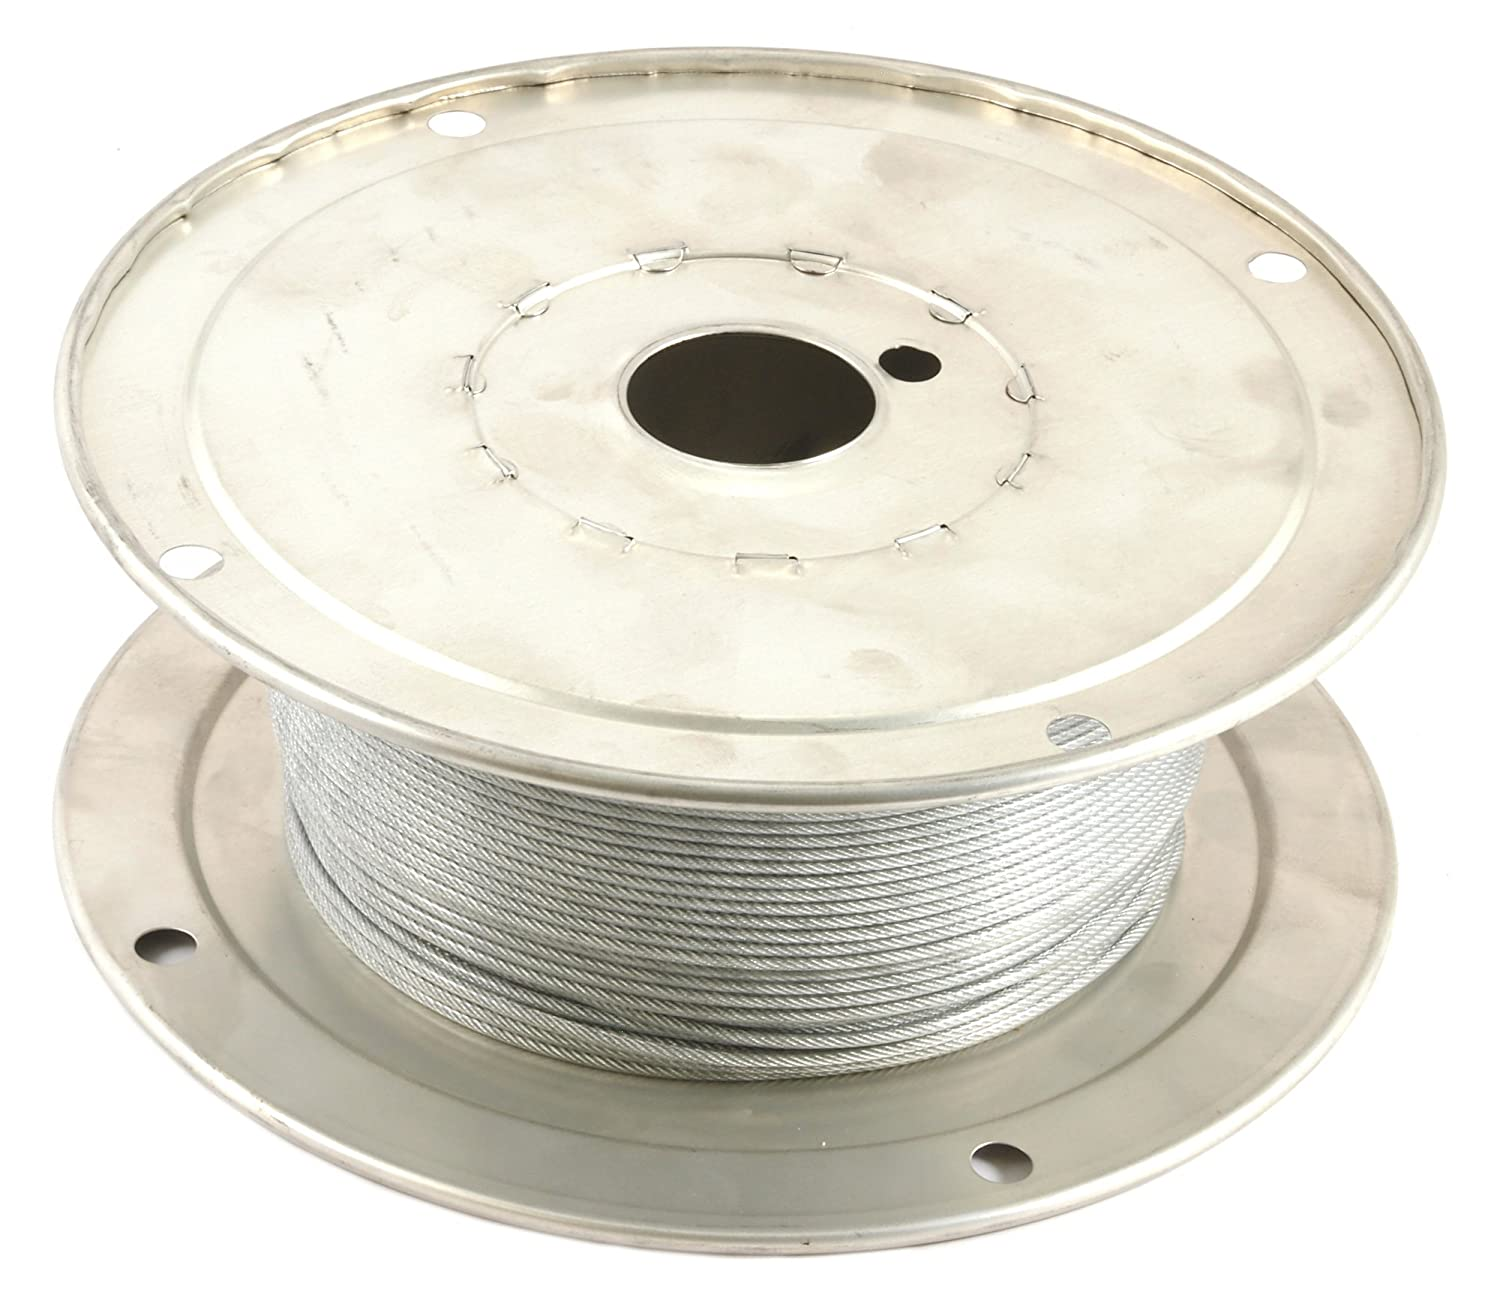 Amazon.com: Forney 70450 Wire Rope, Vinyl Coated Aircraft Cable ...